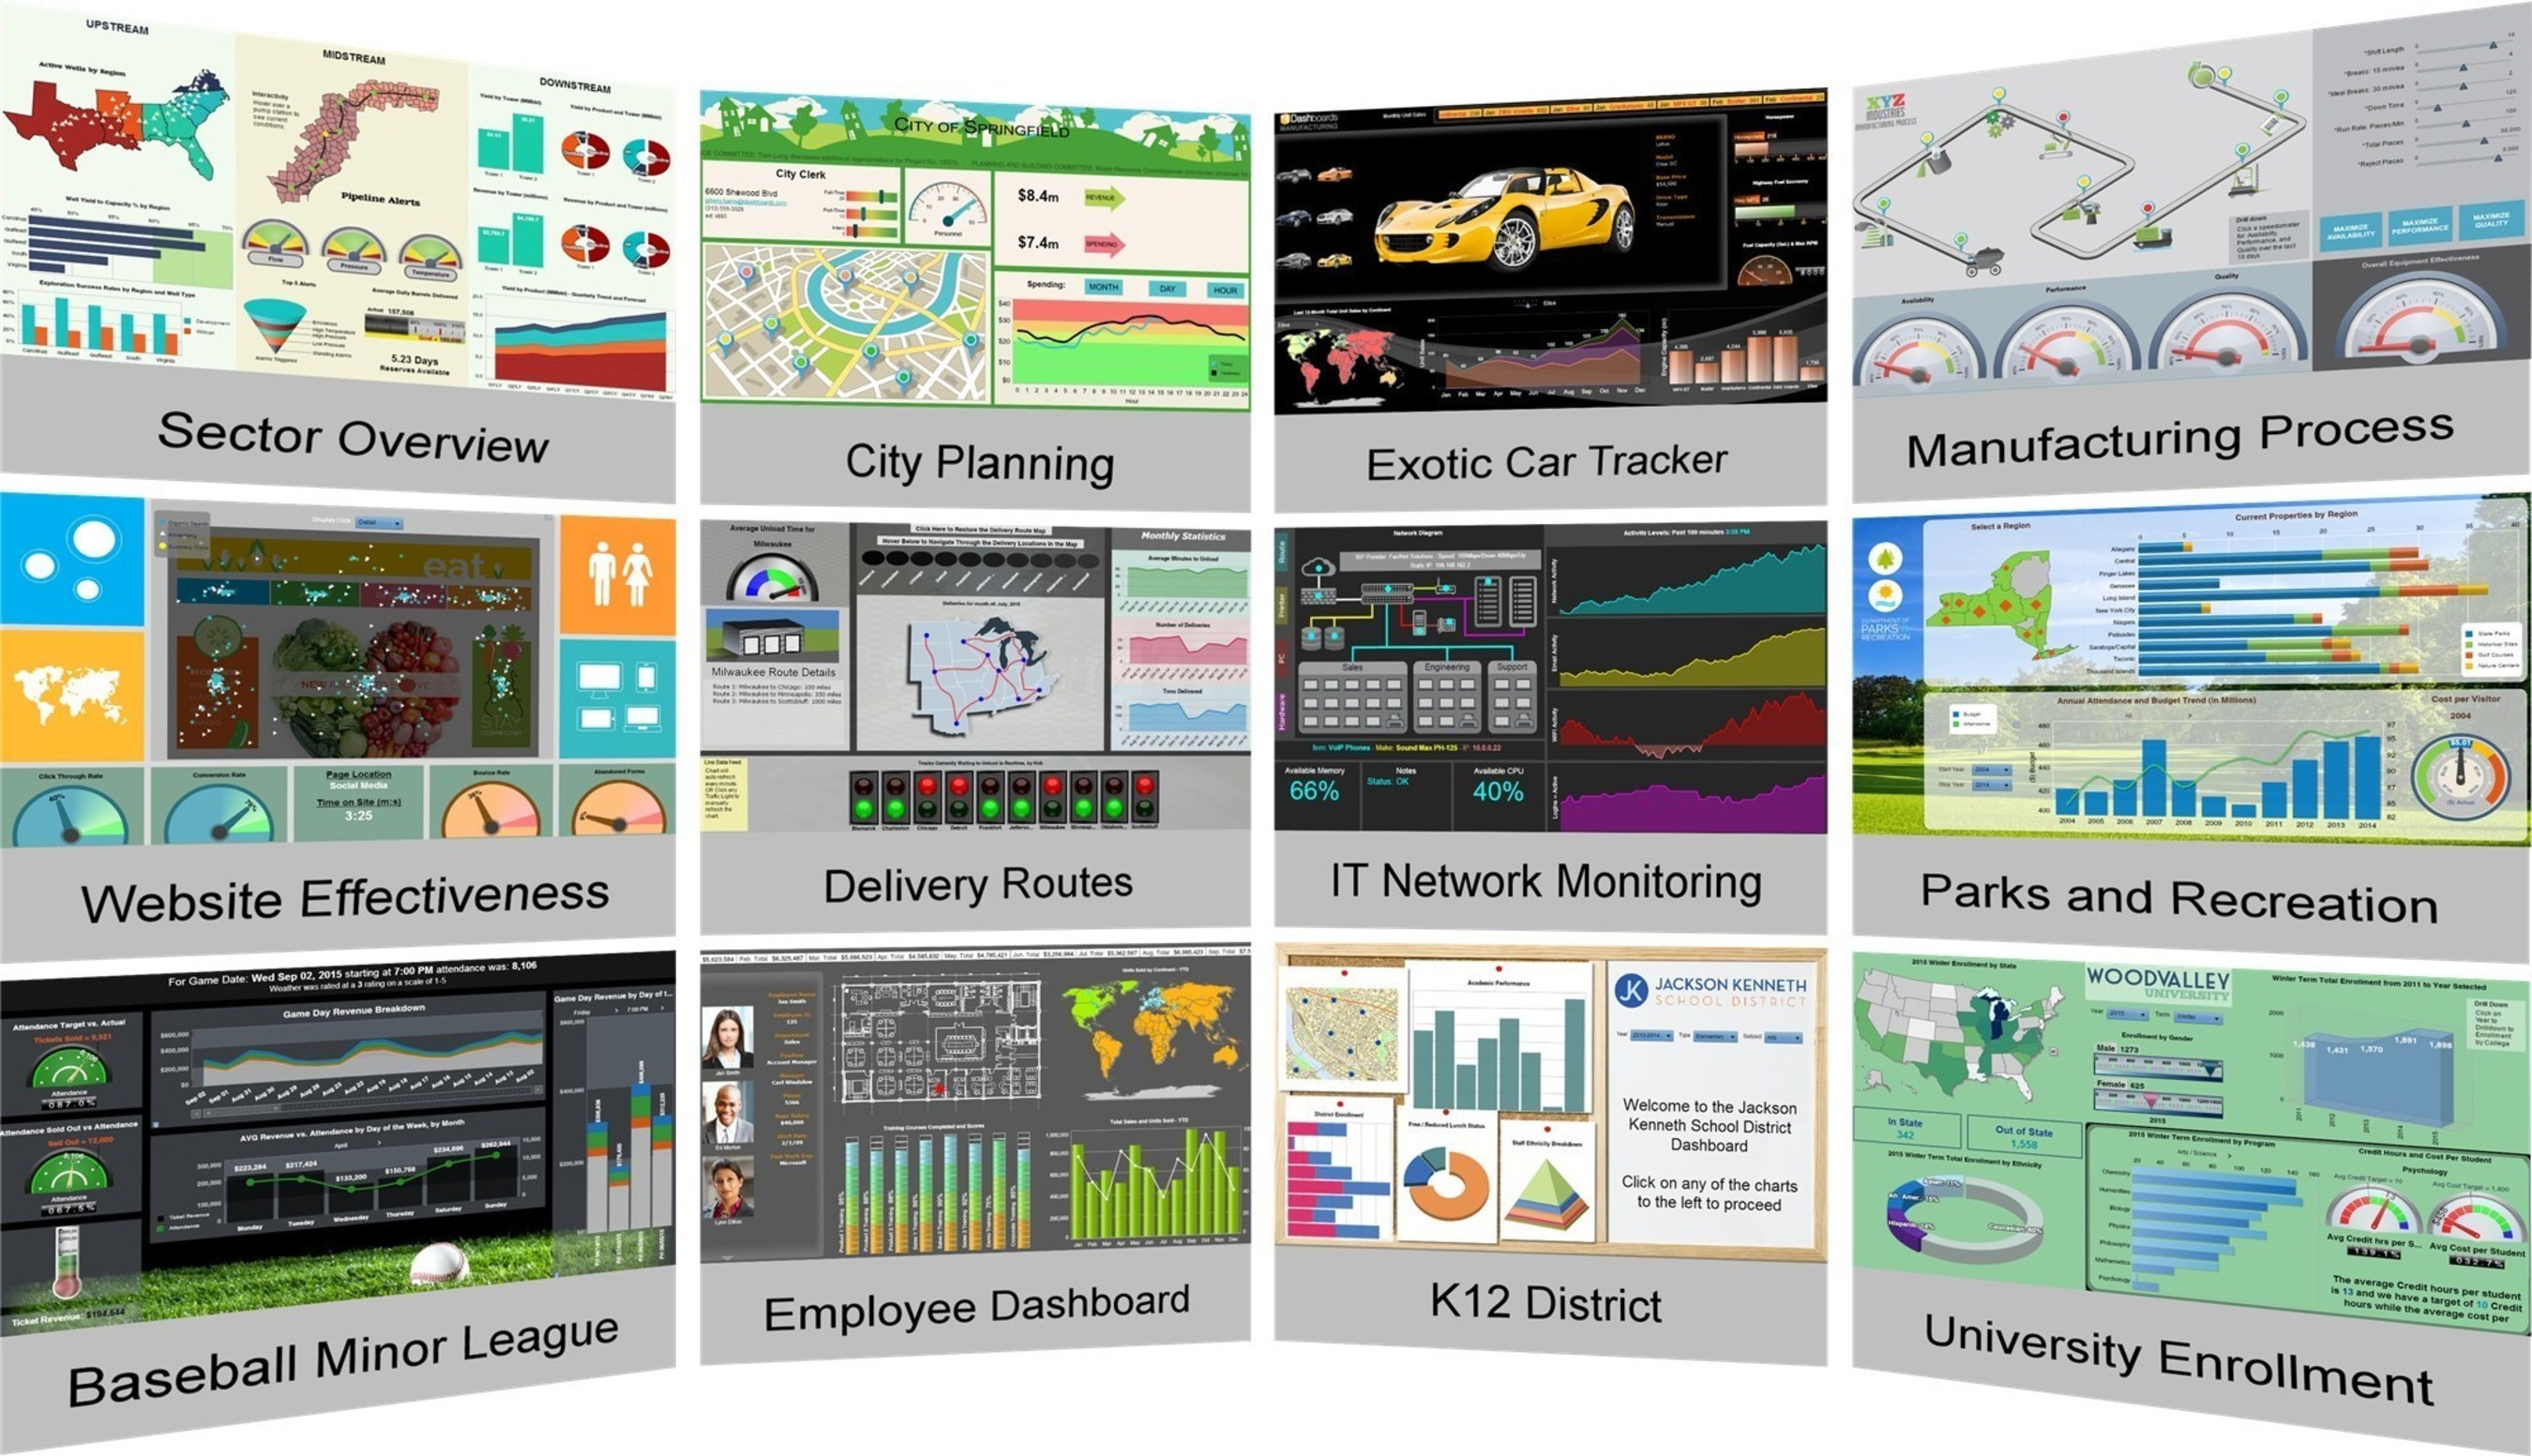 iDashboards creates visually appealing dashboard solutions that help organizations in a wide variety of industries better understand their data in order to make improved business decisions.